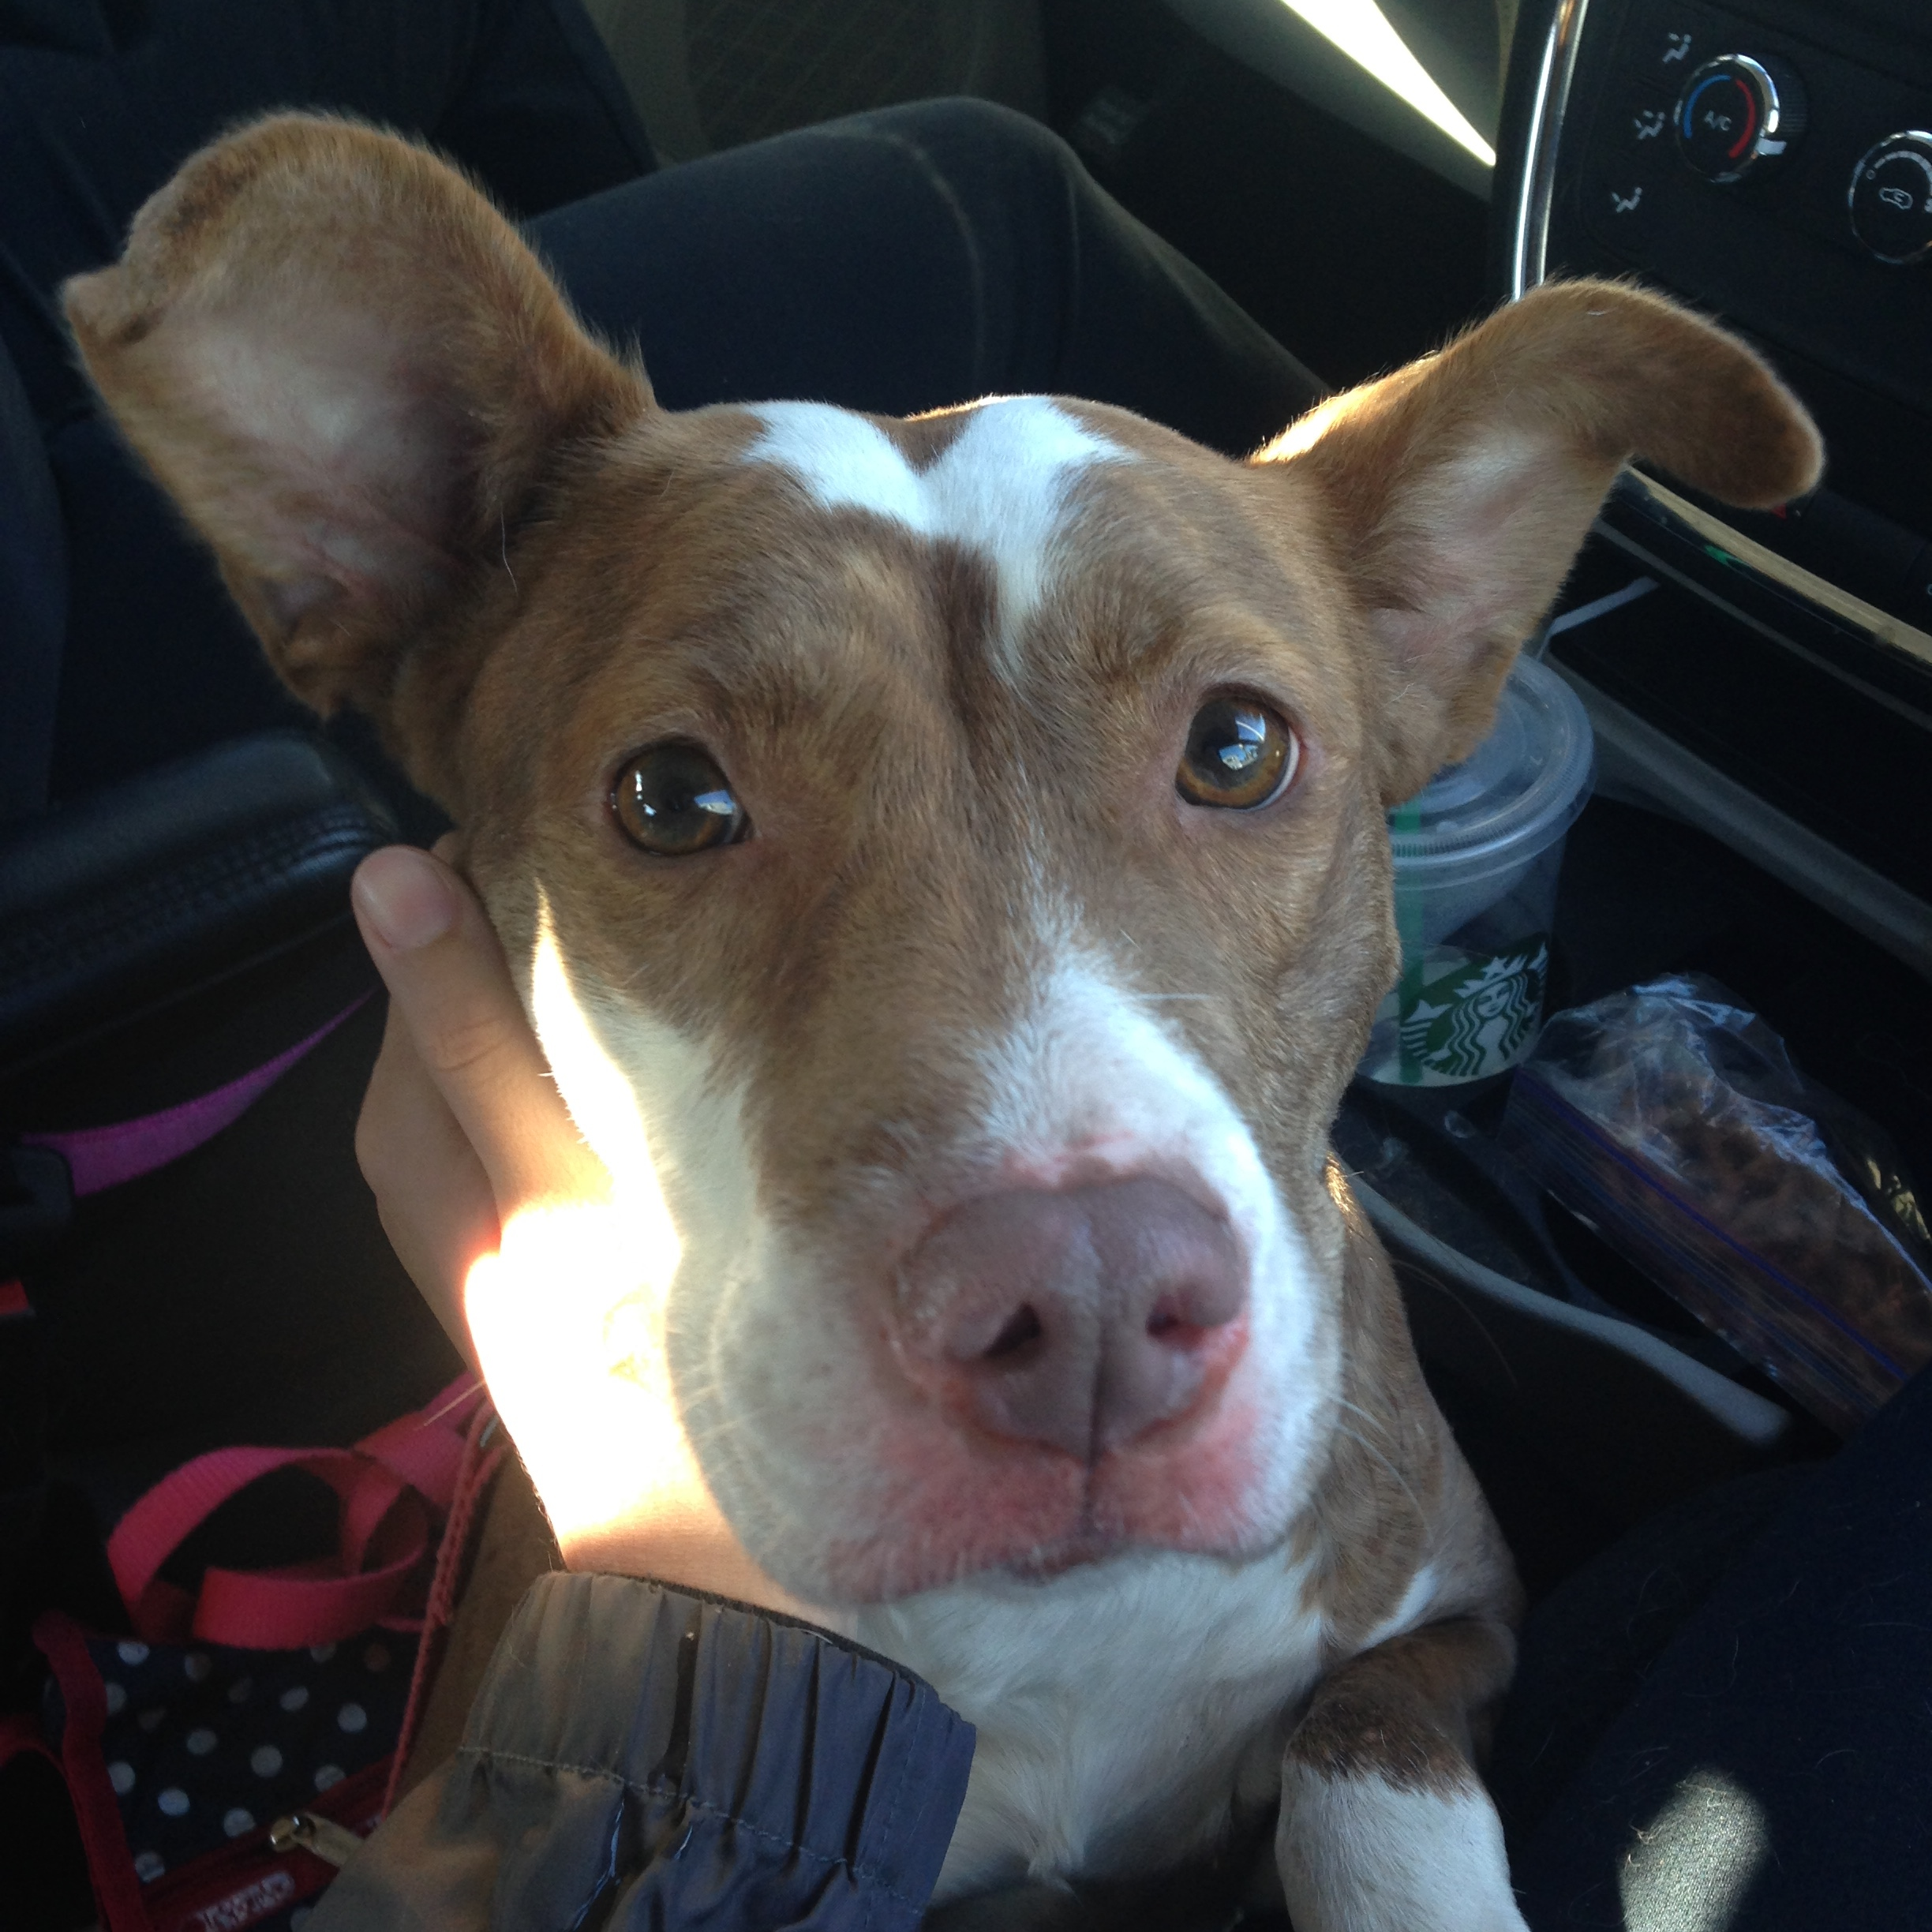 I Was Accused of Larceny When I Rescued a Lost Dog